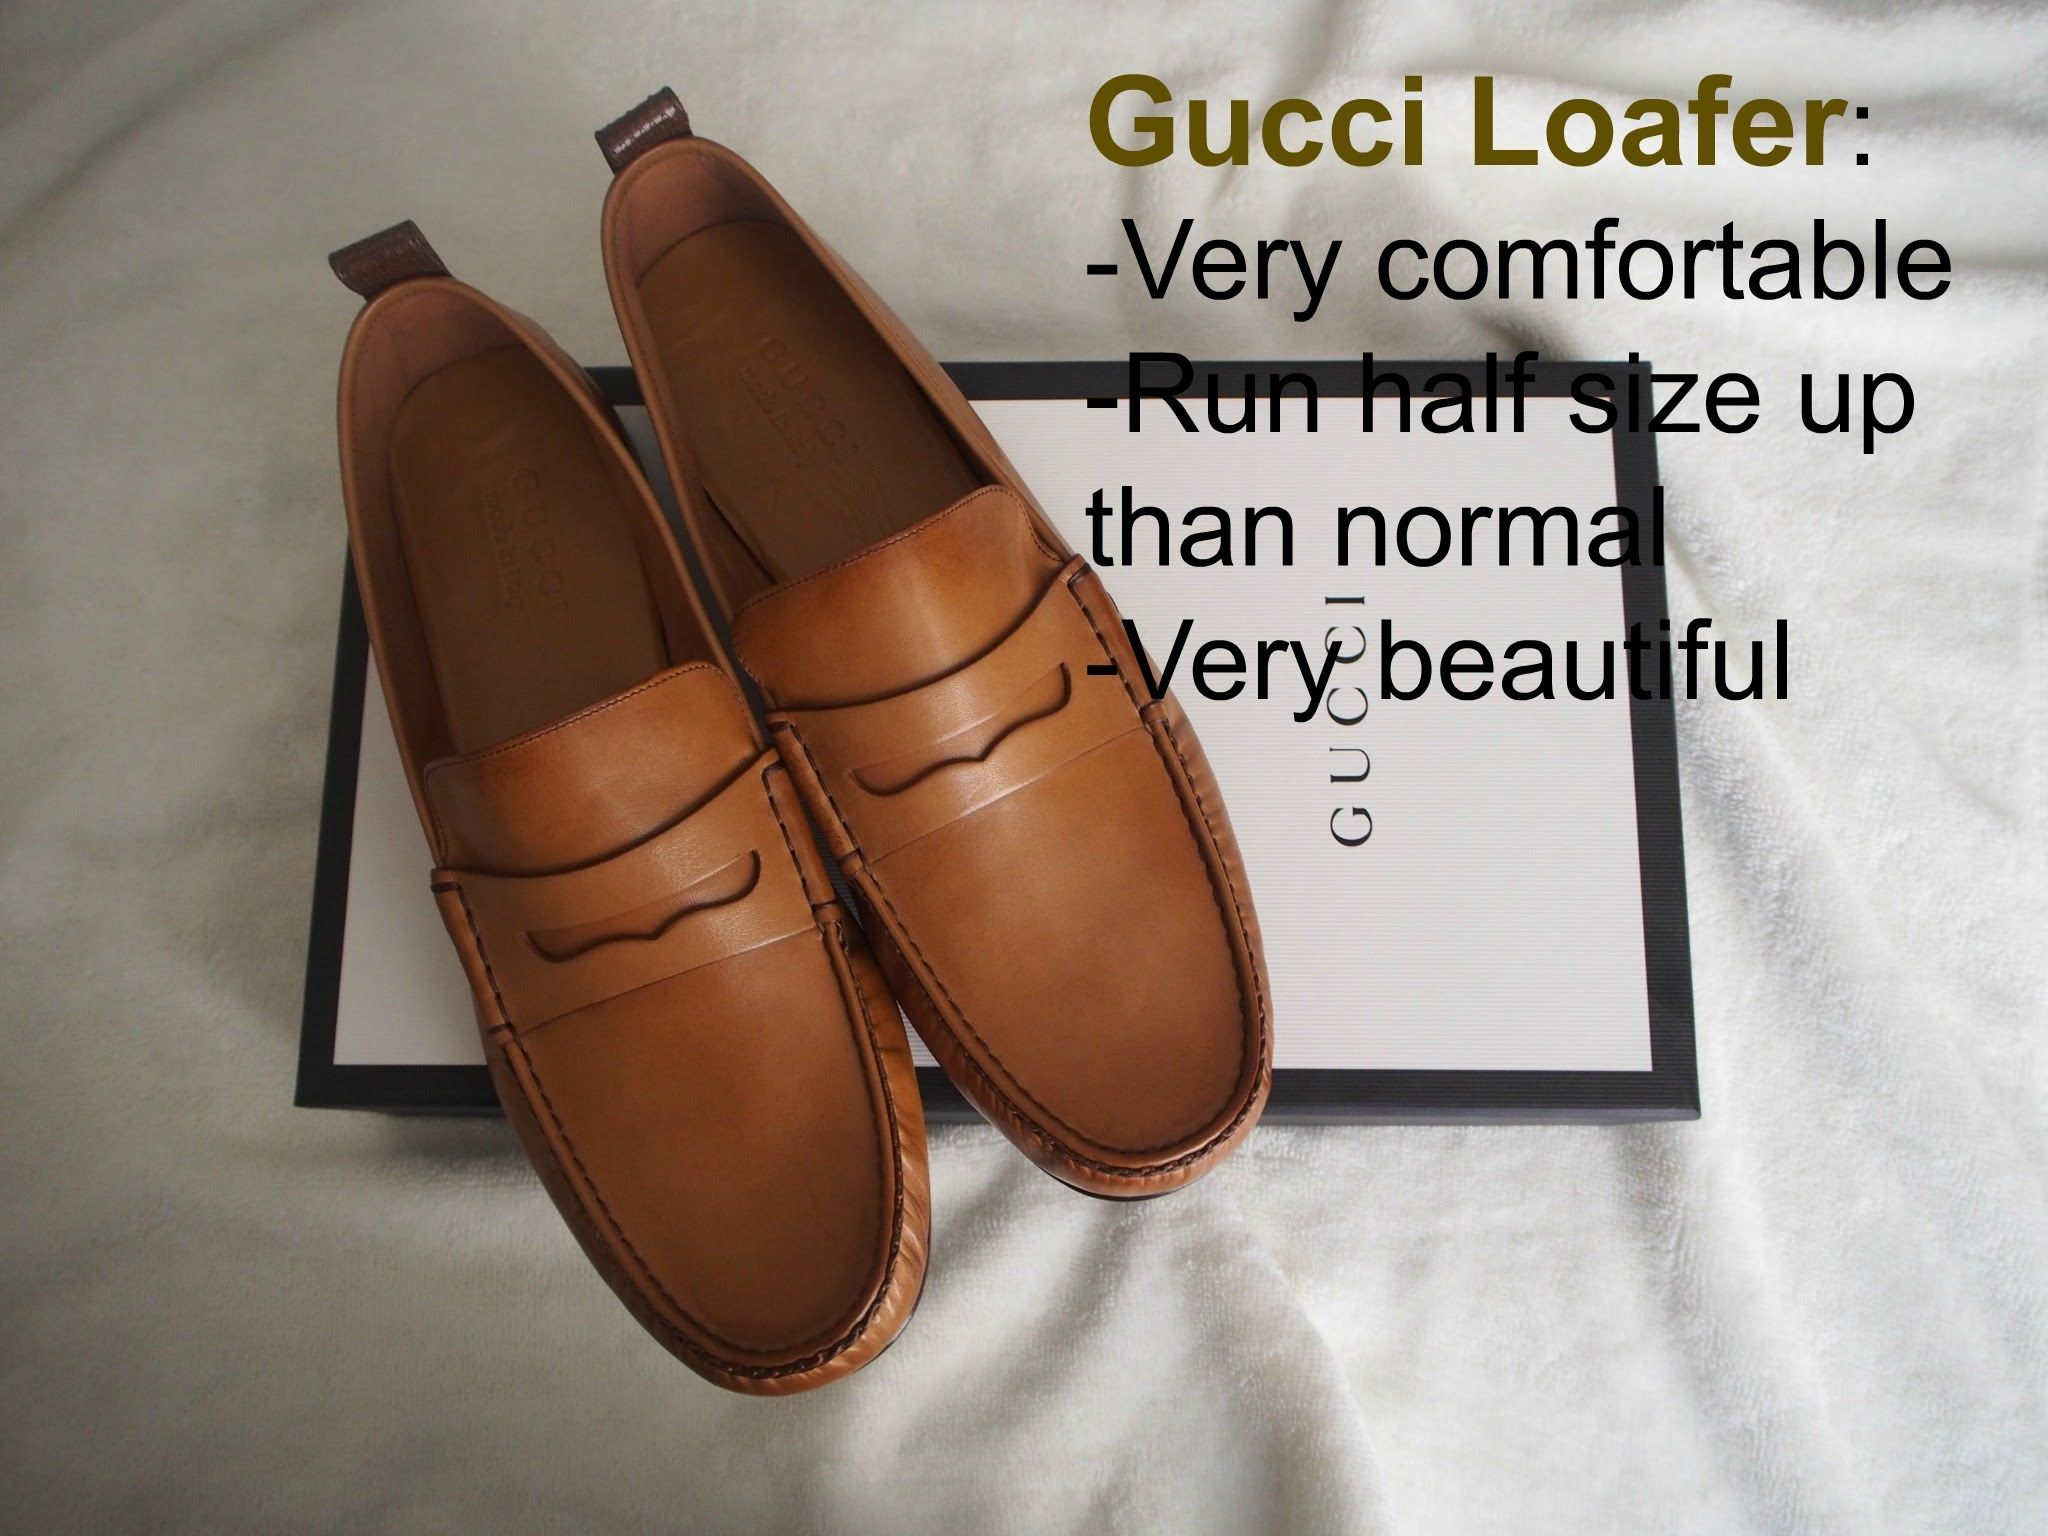 fa383acb2b5 Gucci Leather Loafer Unboxing and Review